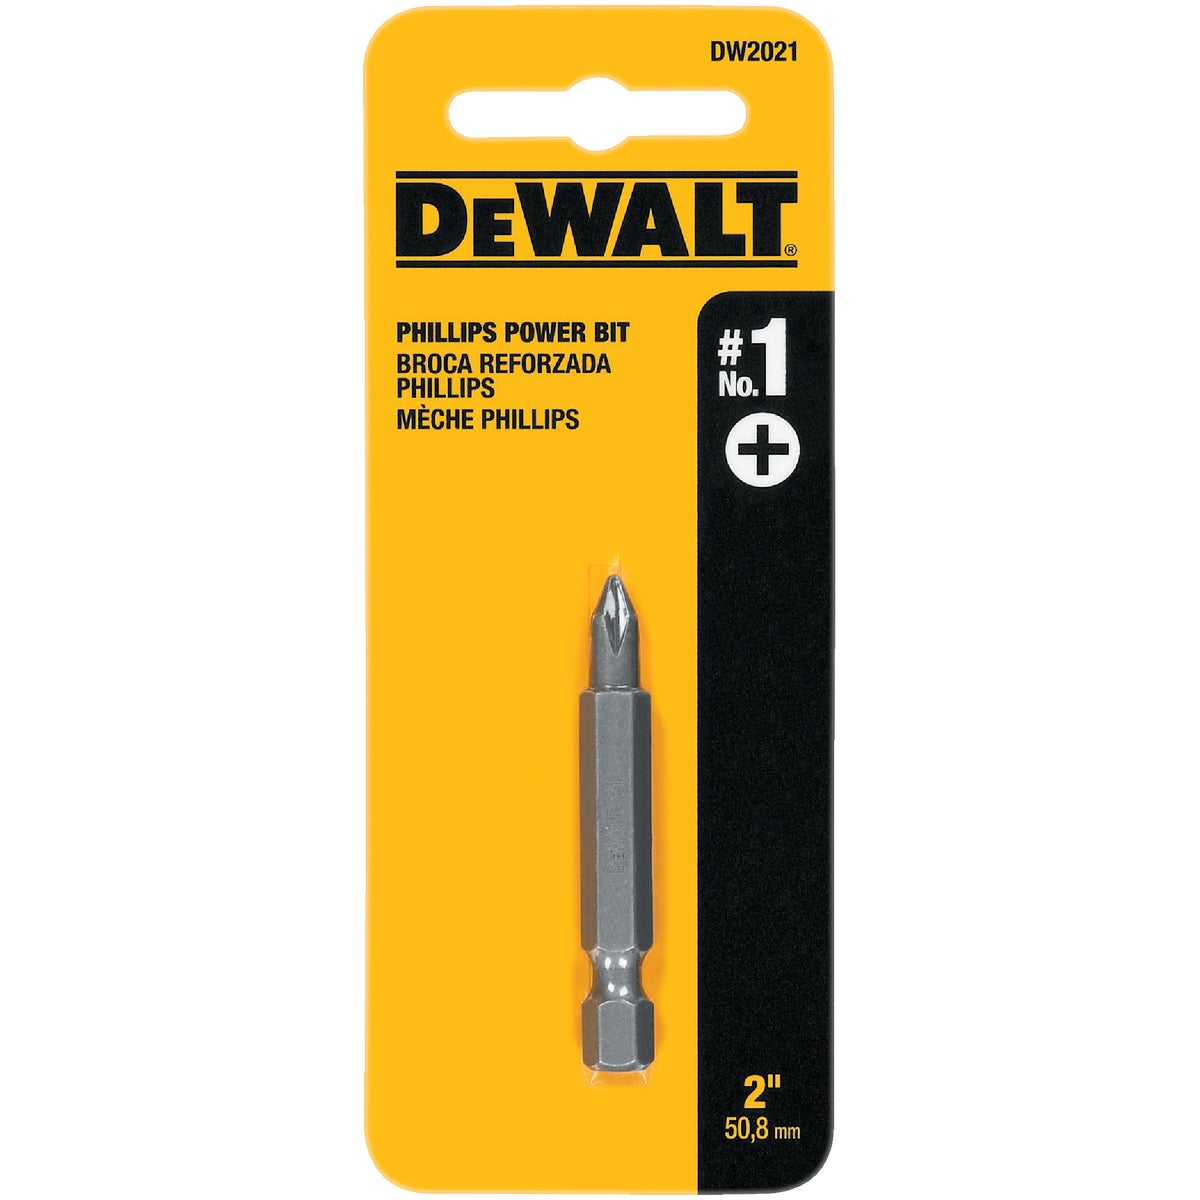 "#1 2"" PHIL POWER BIT - DW2021 by DeWalt"